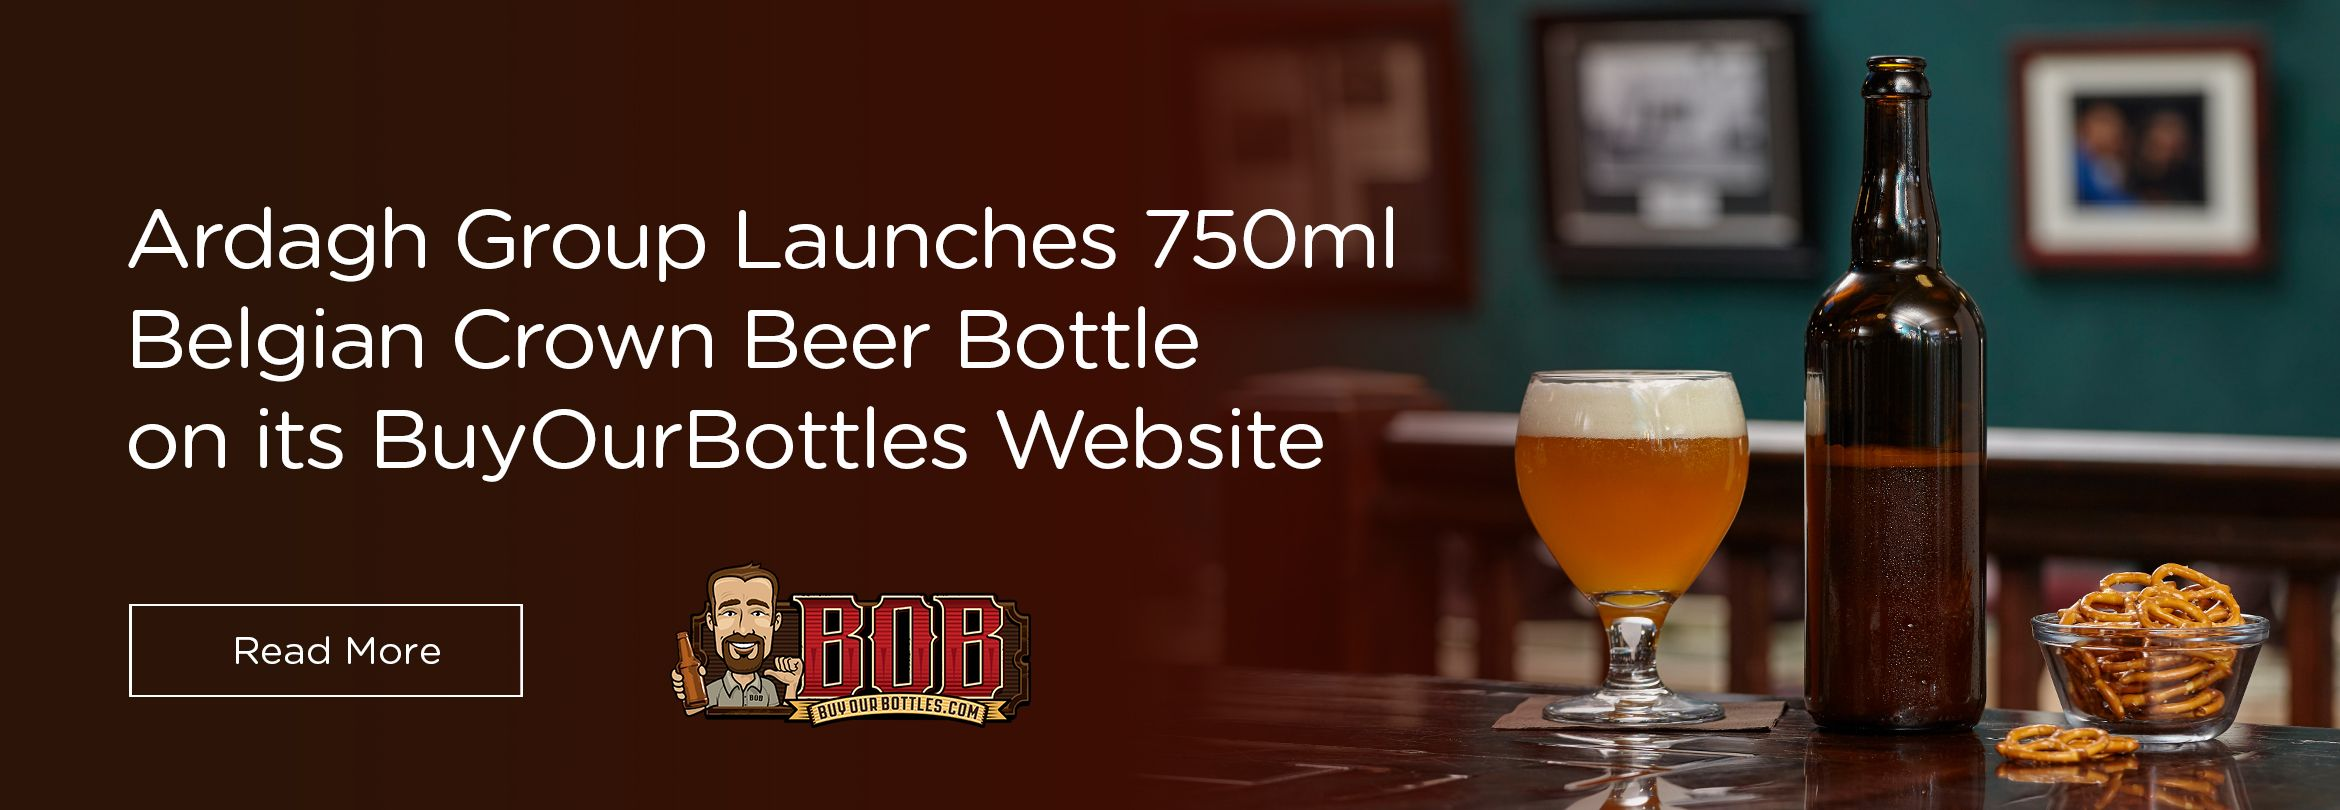 Ardagh Group Launches 750ml Belgian Crown Beer Bottle on BuyOurBottles Website